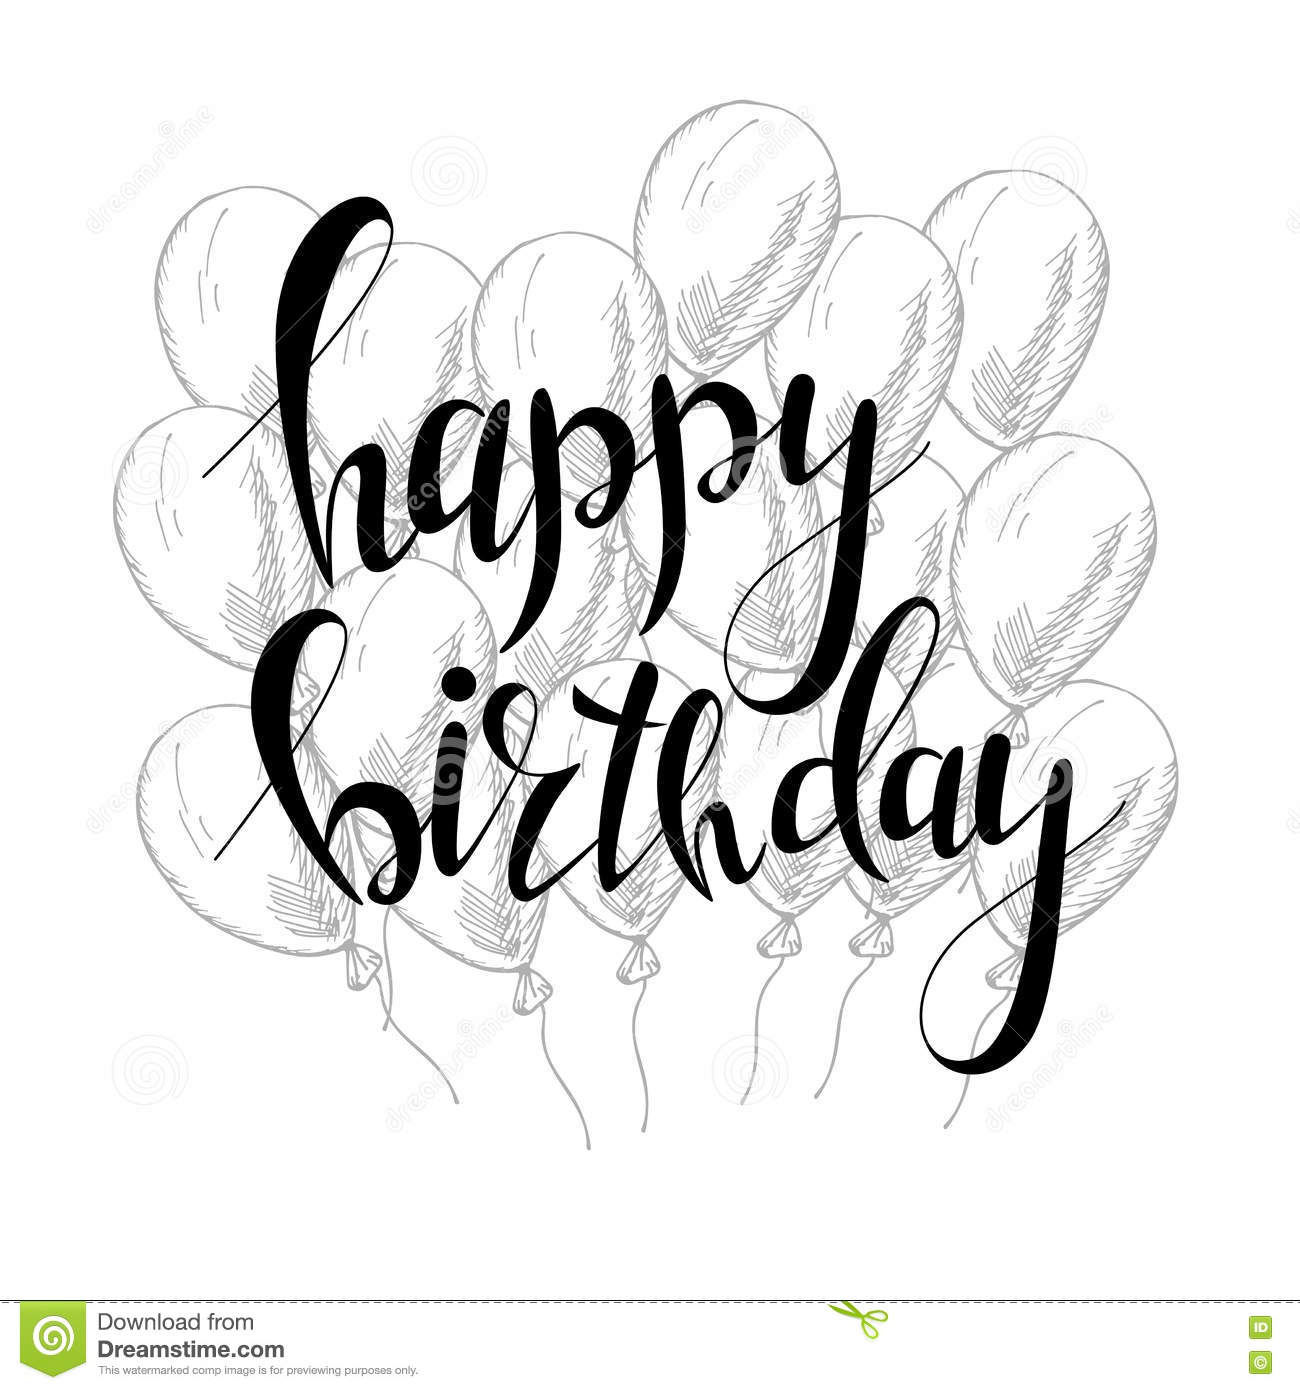 happy birthday design drawing ; vector-hand-lettering-happy-birthday-greeting-card-calligraphy-design-black-white-overlay-73819419